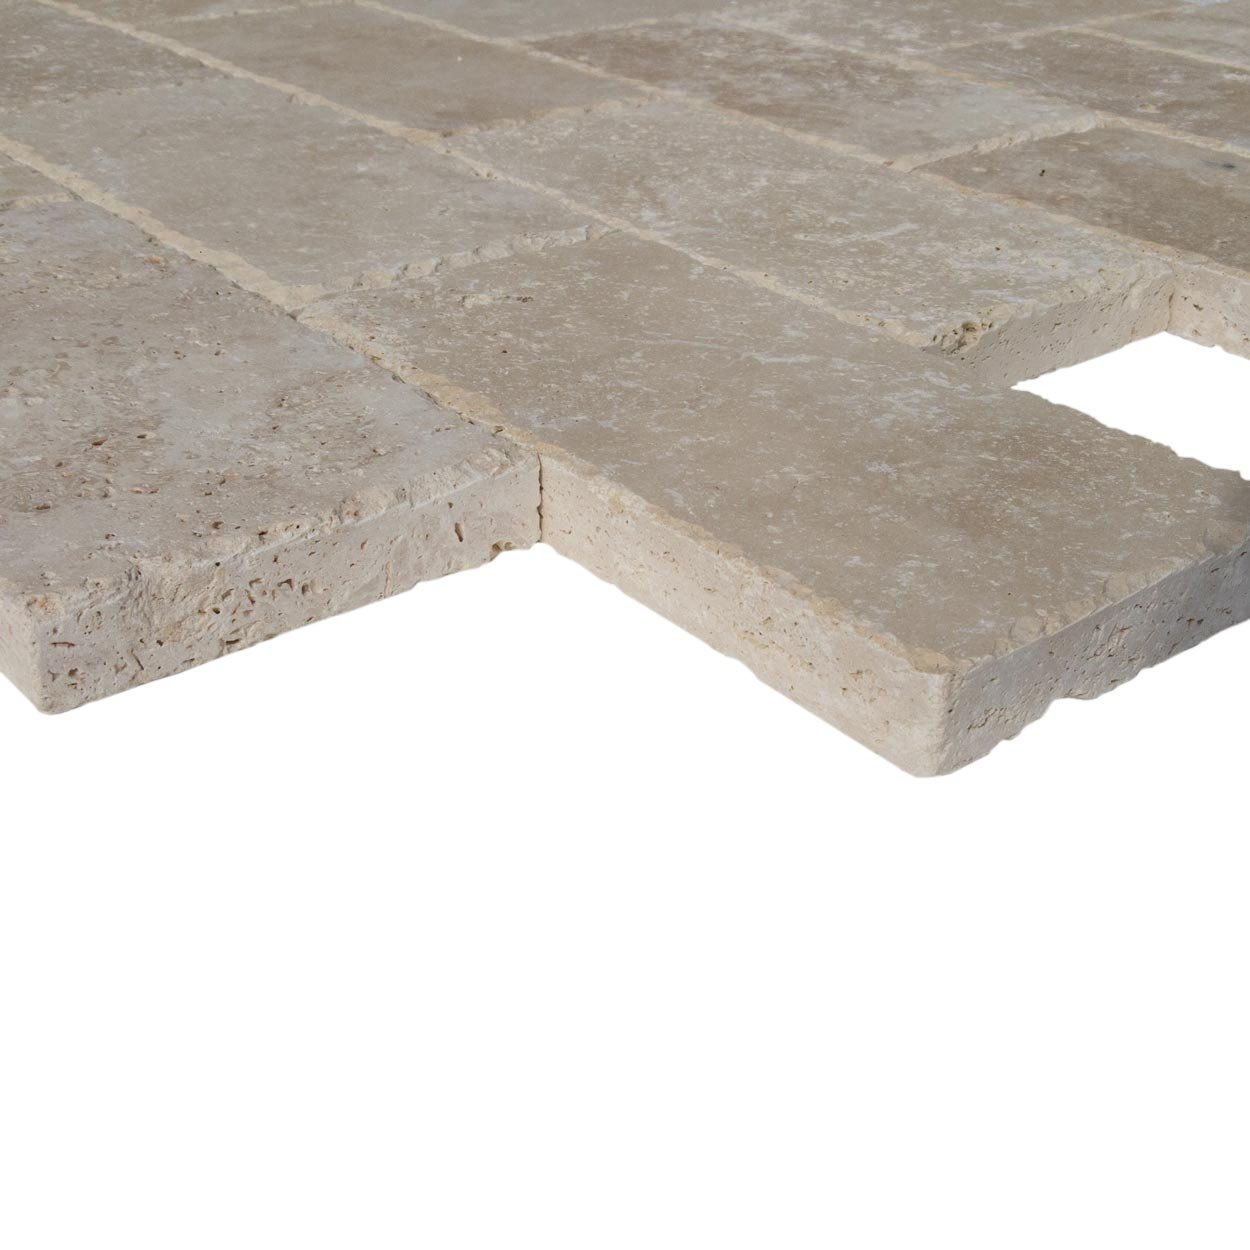 20020078-classic-light-travertine-pavers-6x12-profile-view-www.mayausatile